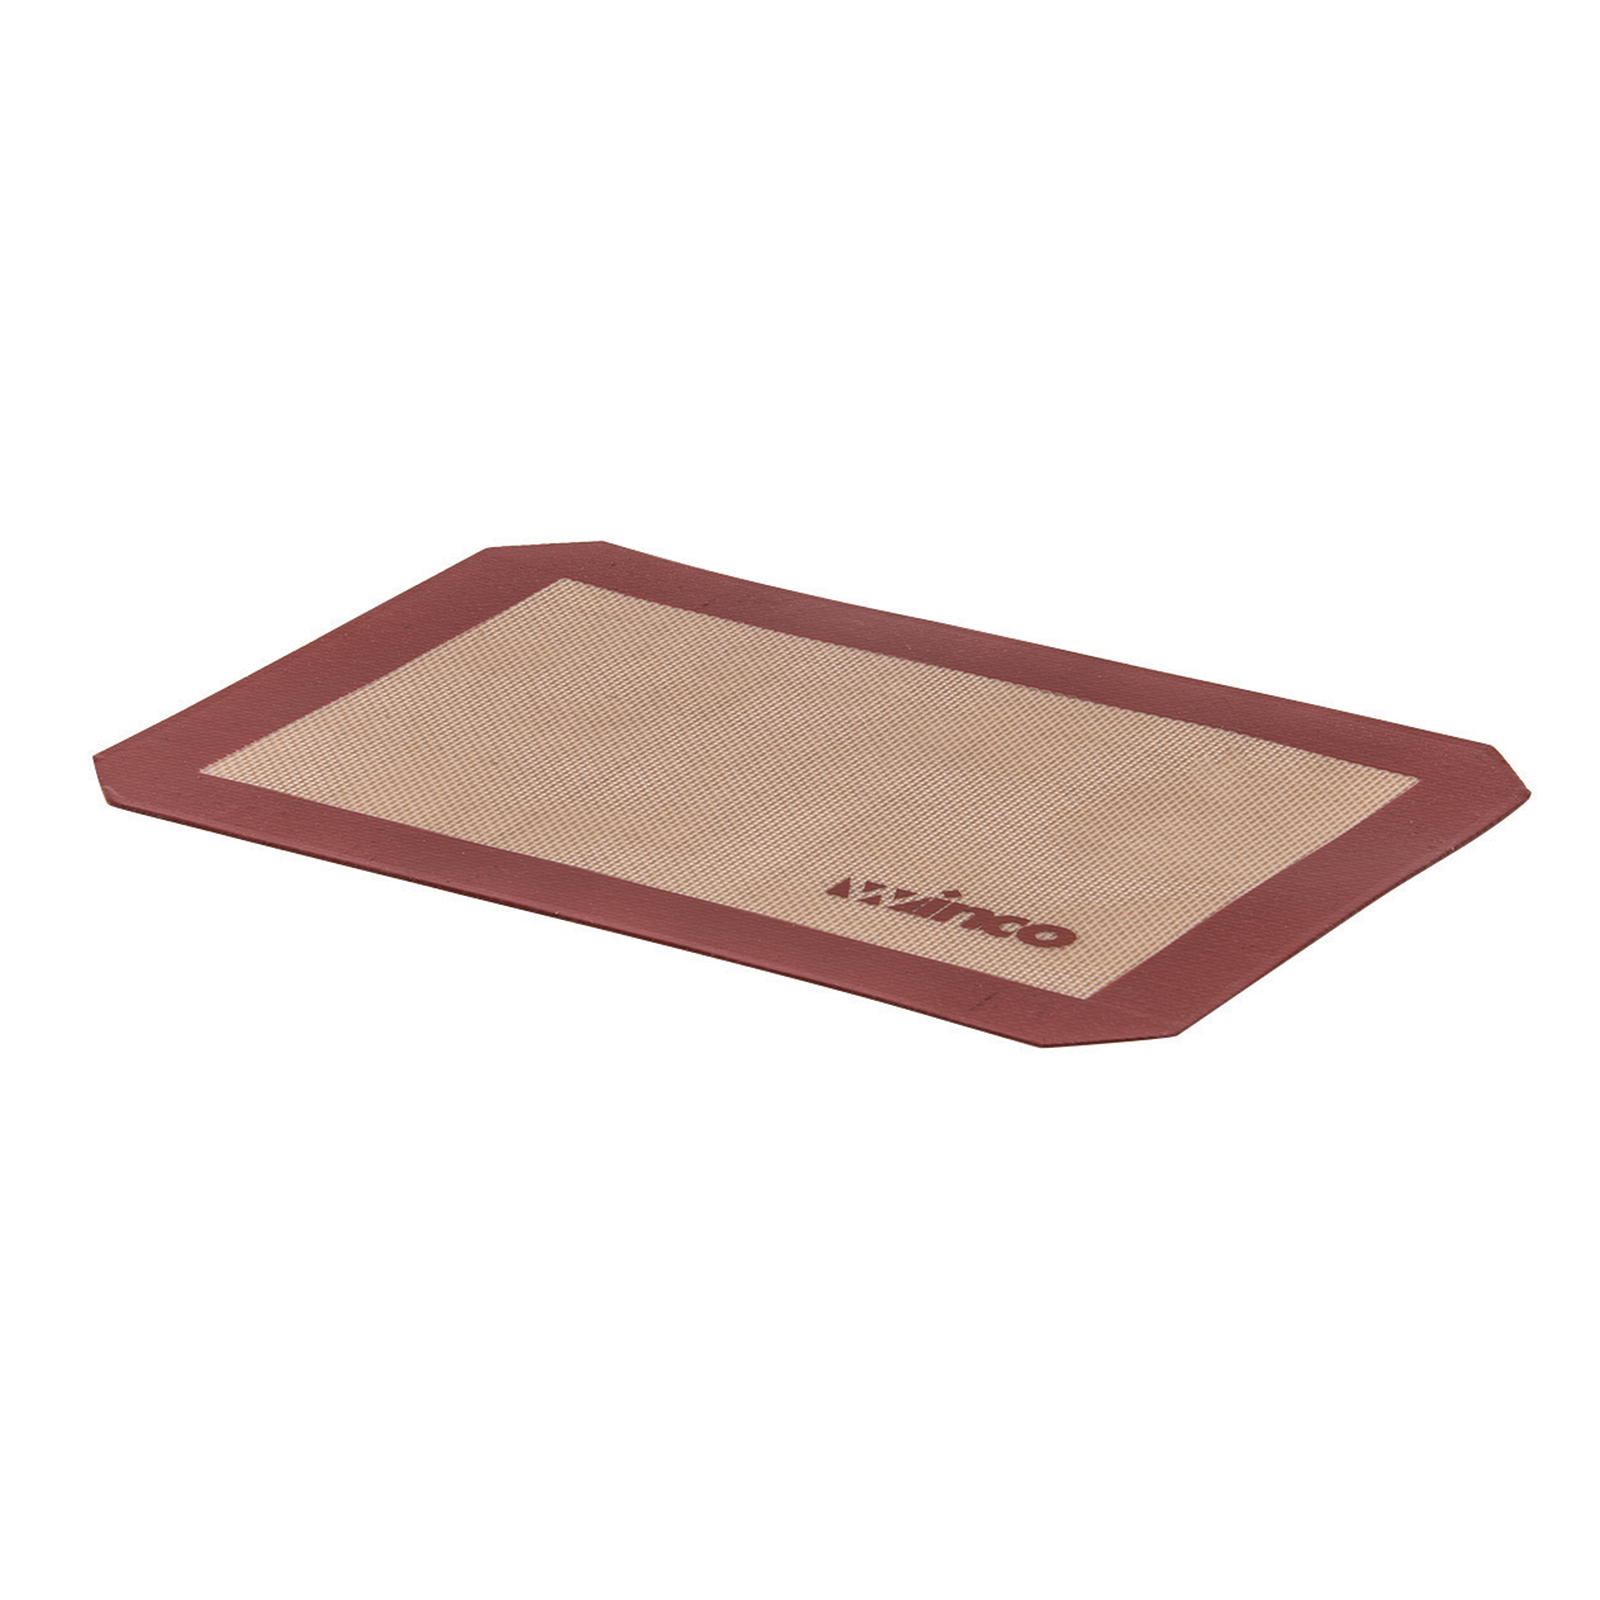 1800-17 Winco SBS-16 baking mat